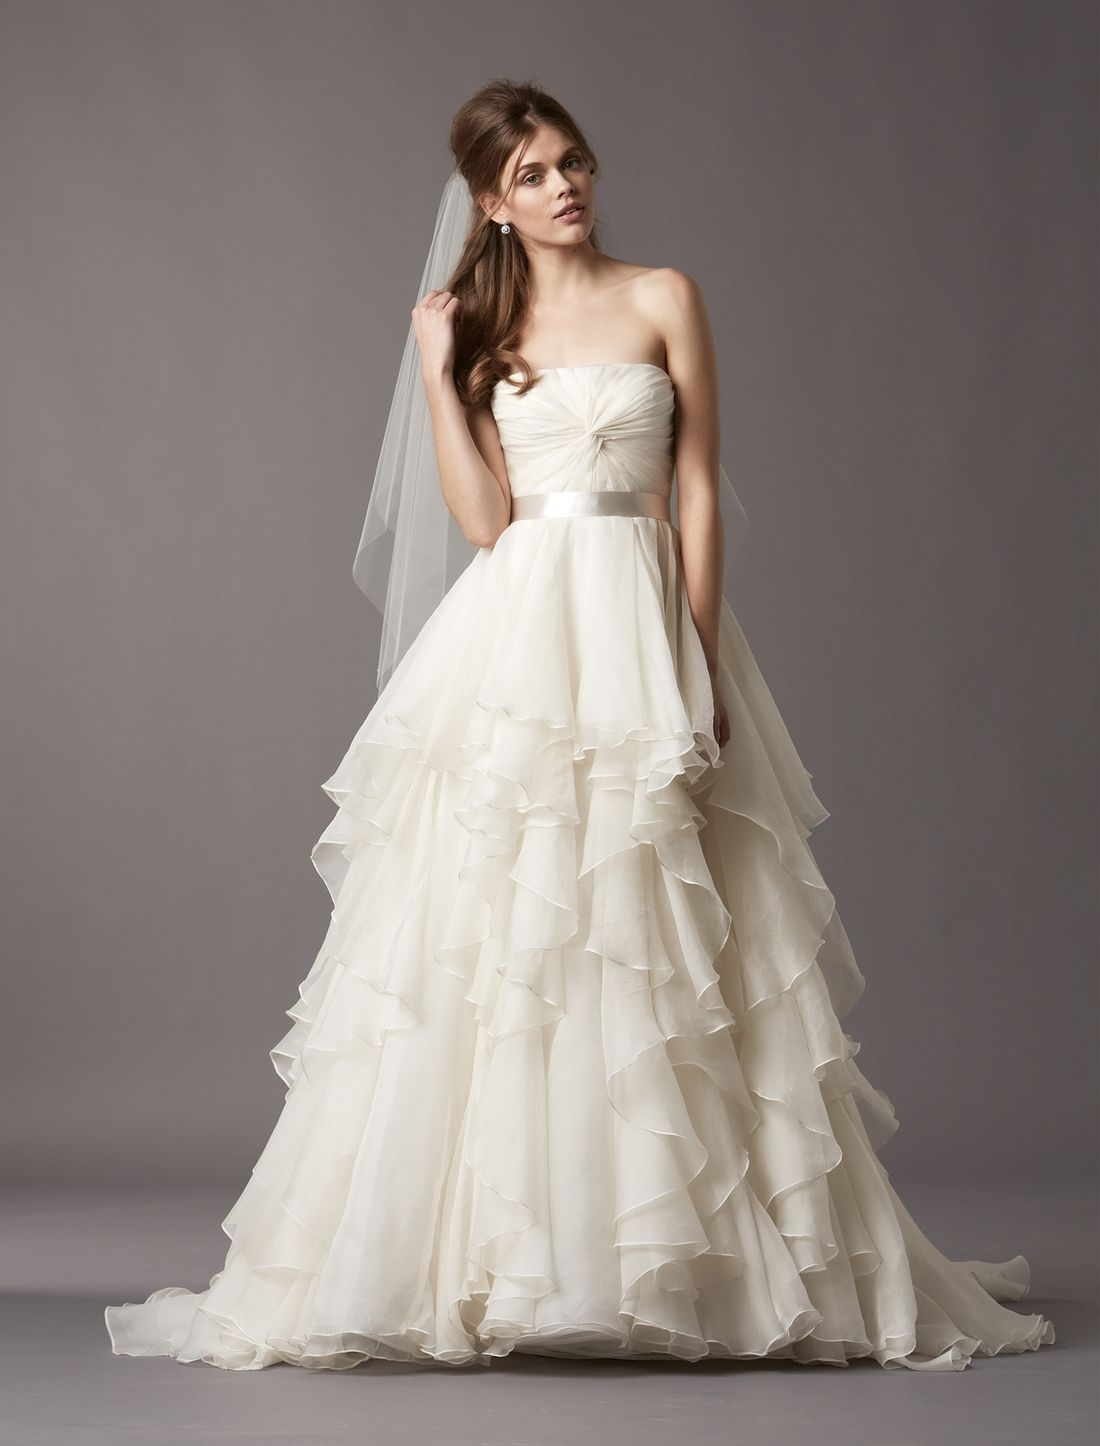 Stunning Explore Romantic Wedding Gowns And More